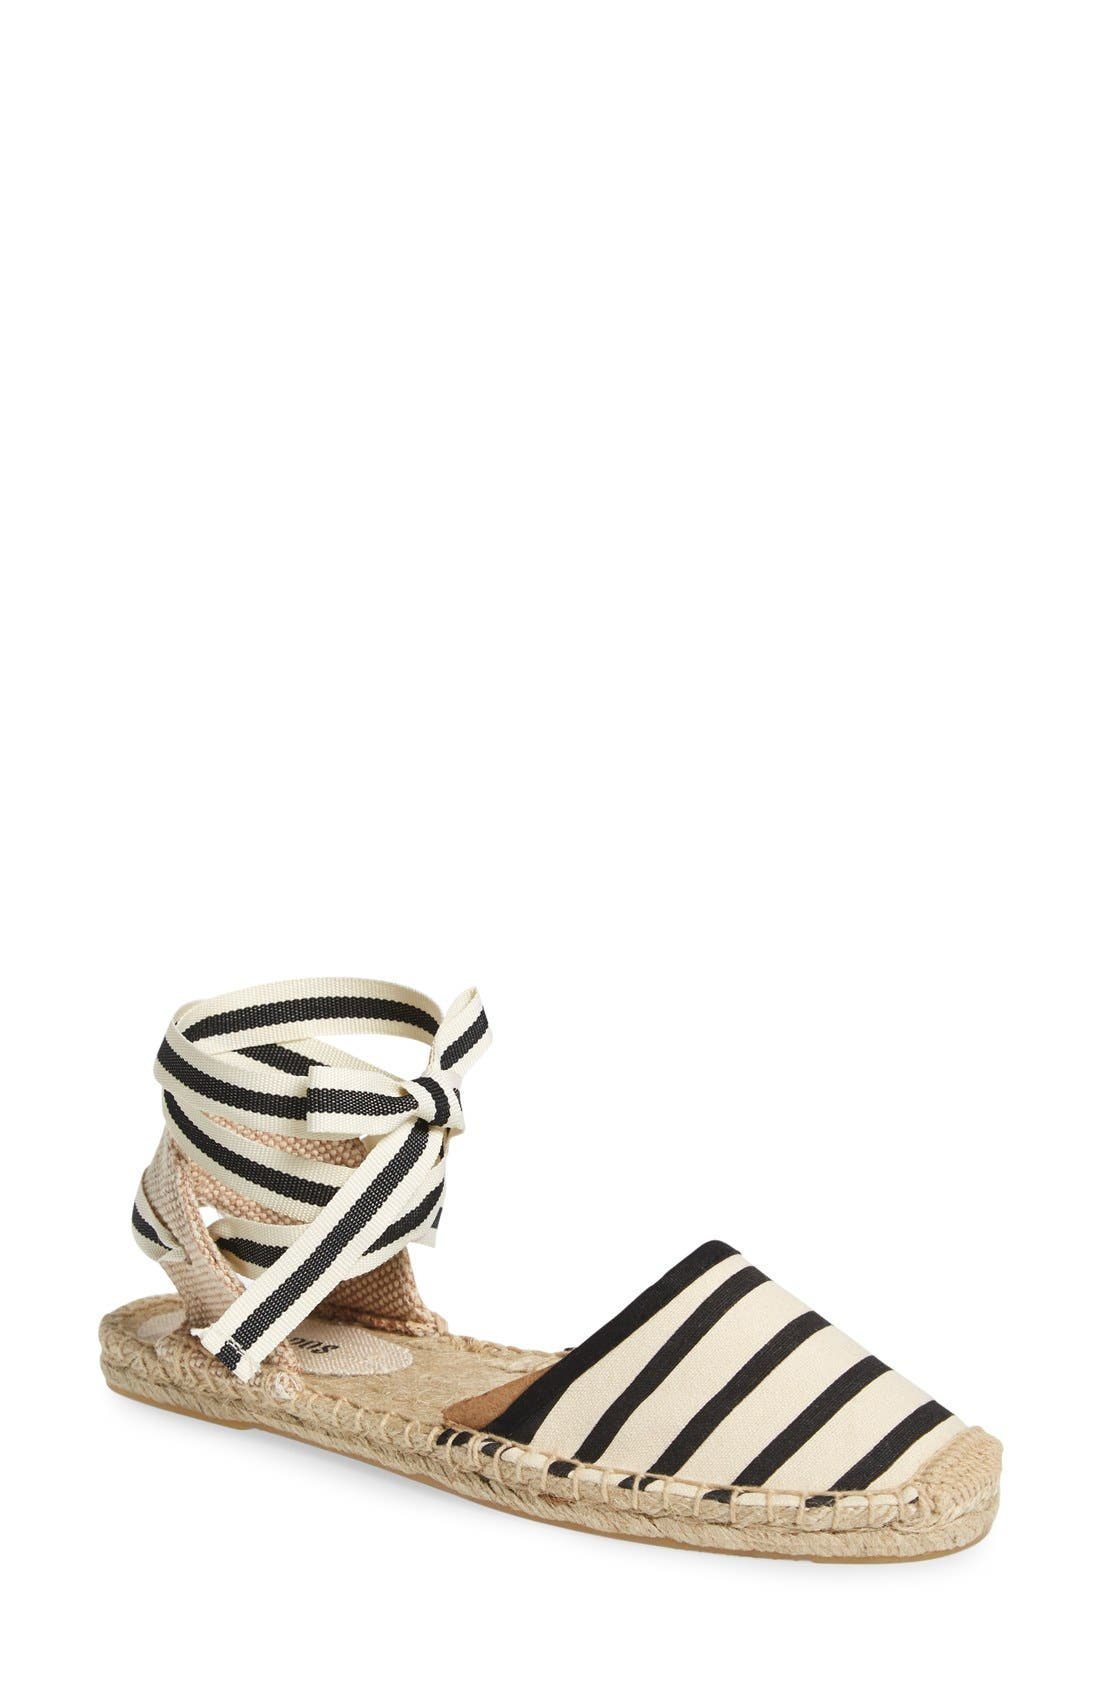 Main Image - Soludos Lace-Up Espadrille Sandal (Women)